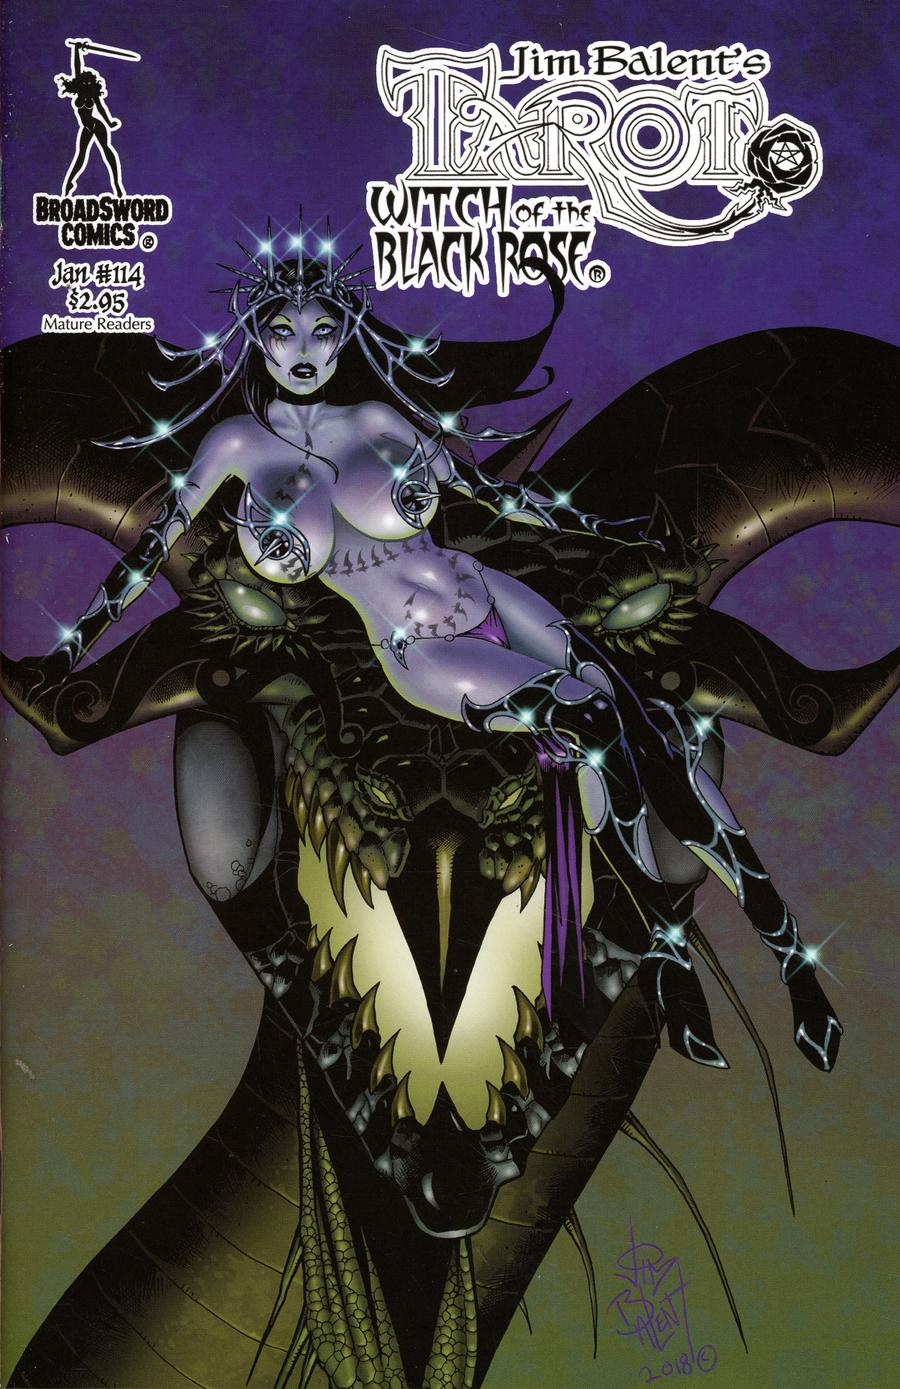 Tarot Witch Of The Black Rose #114 Cover A Regular Jim Balent Pose Cover